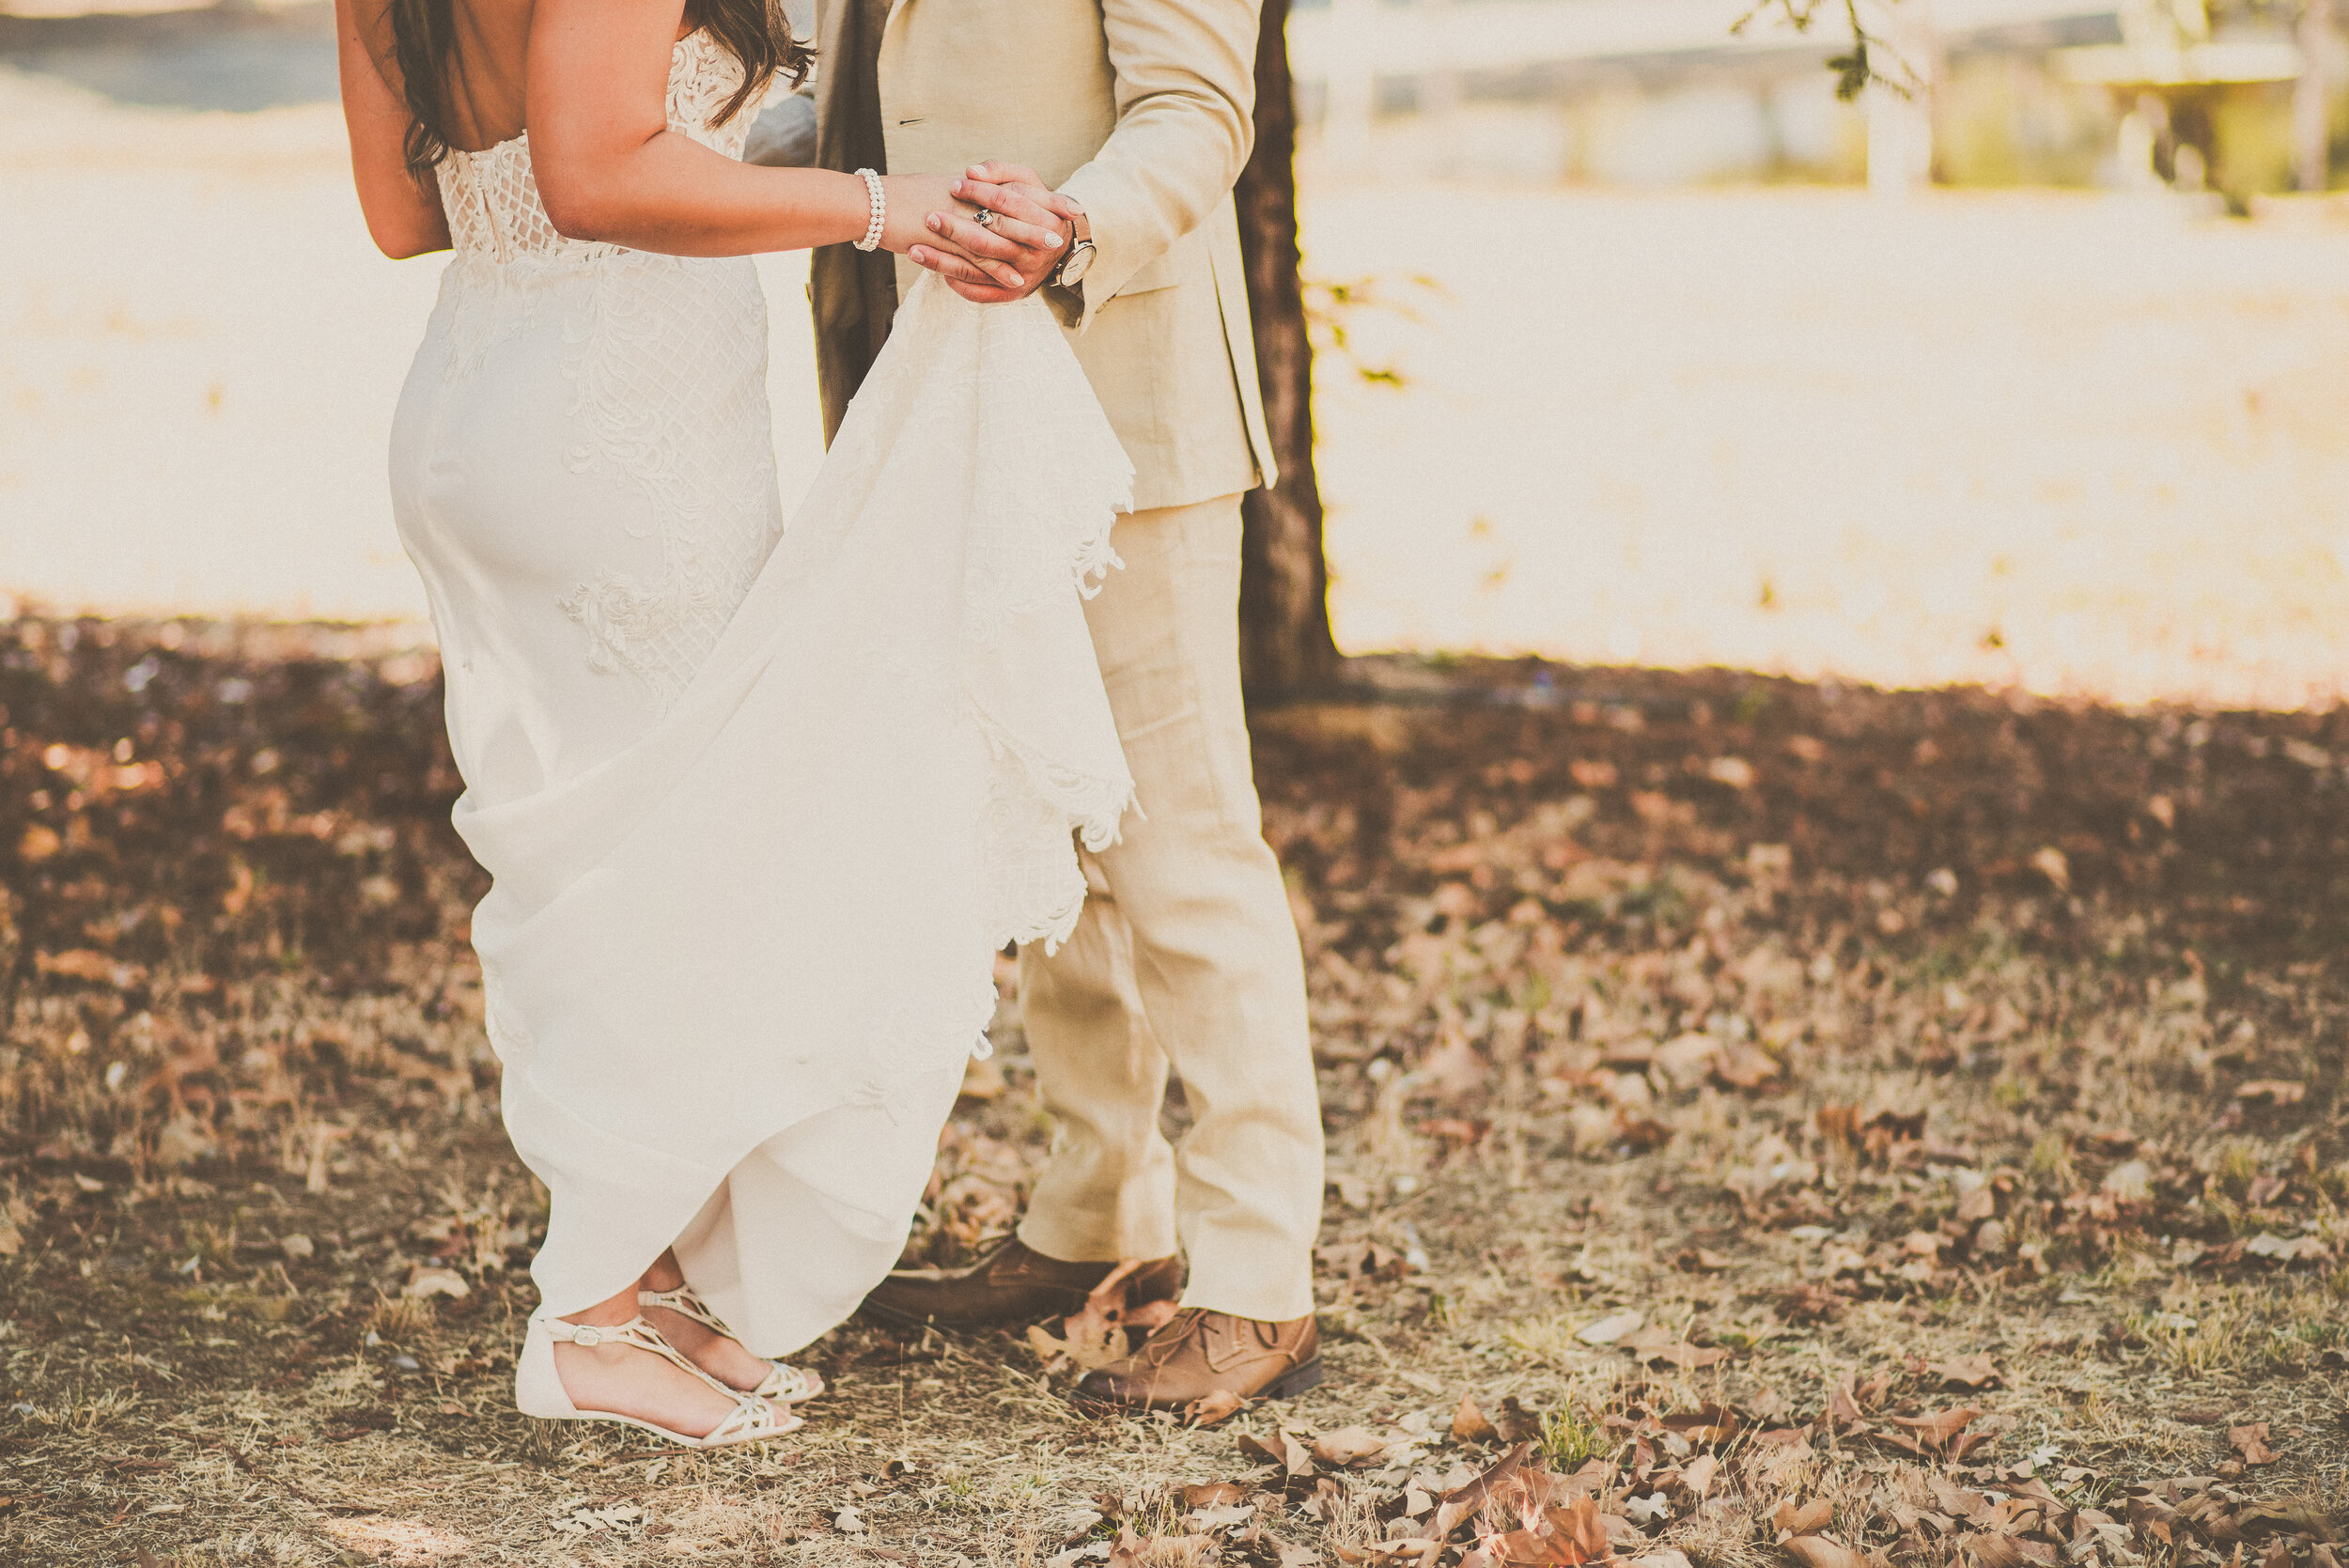 Motter Wedding - First Look-16.jpg